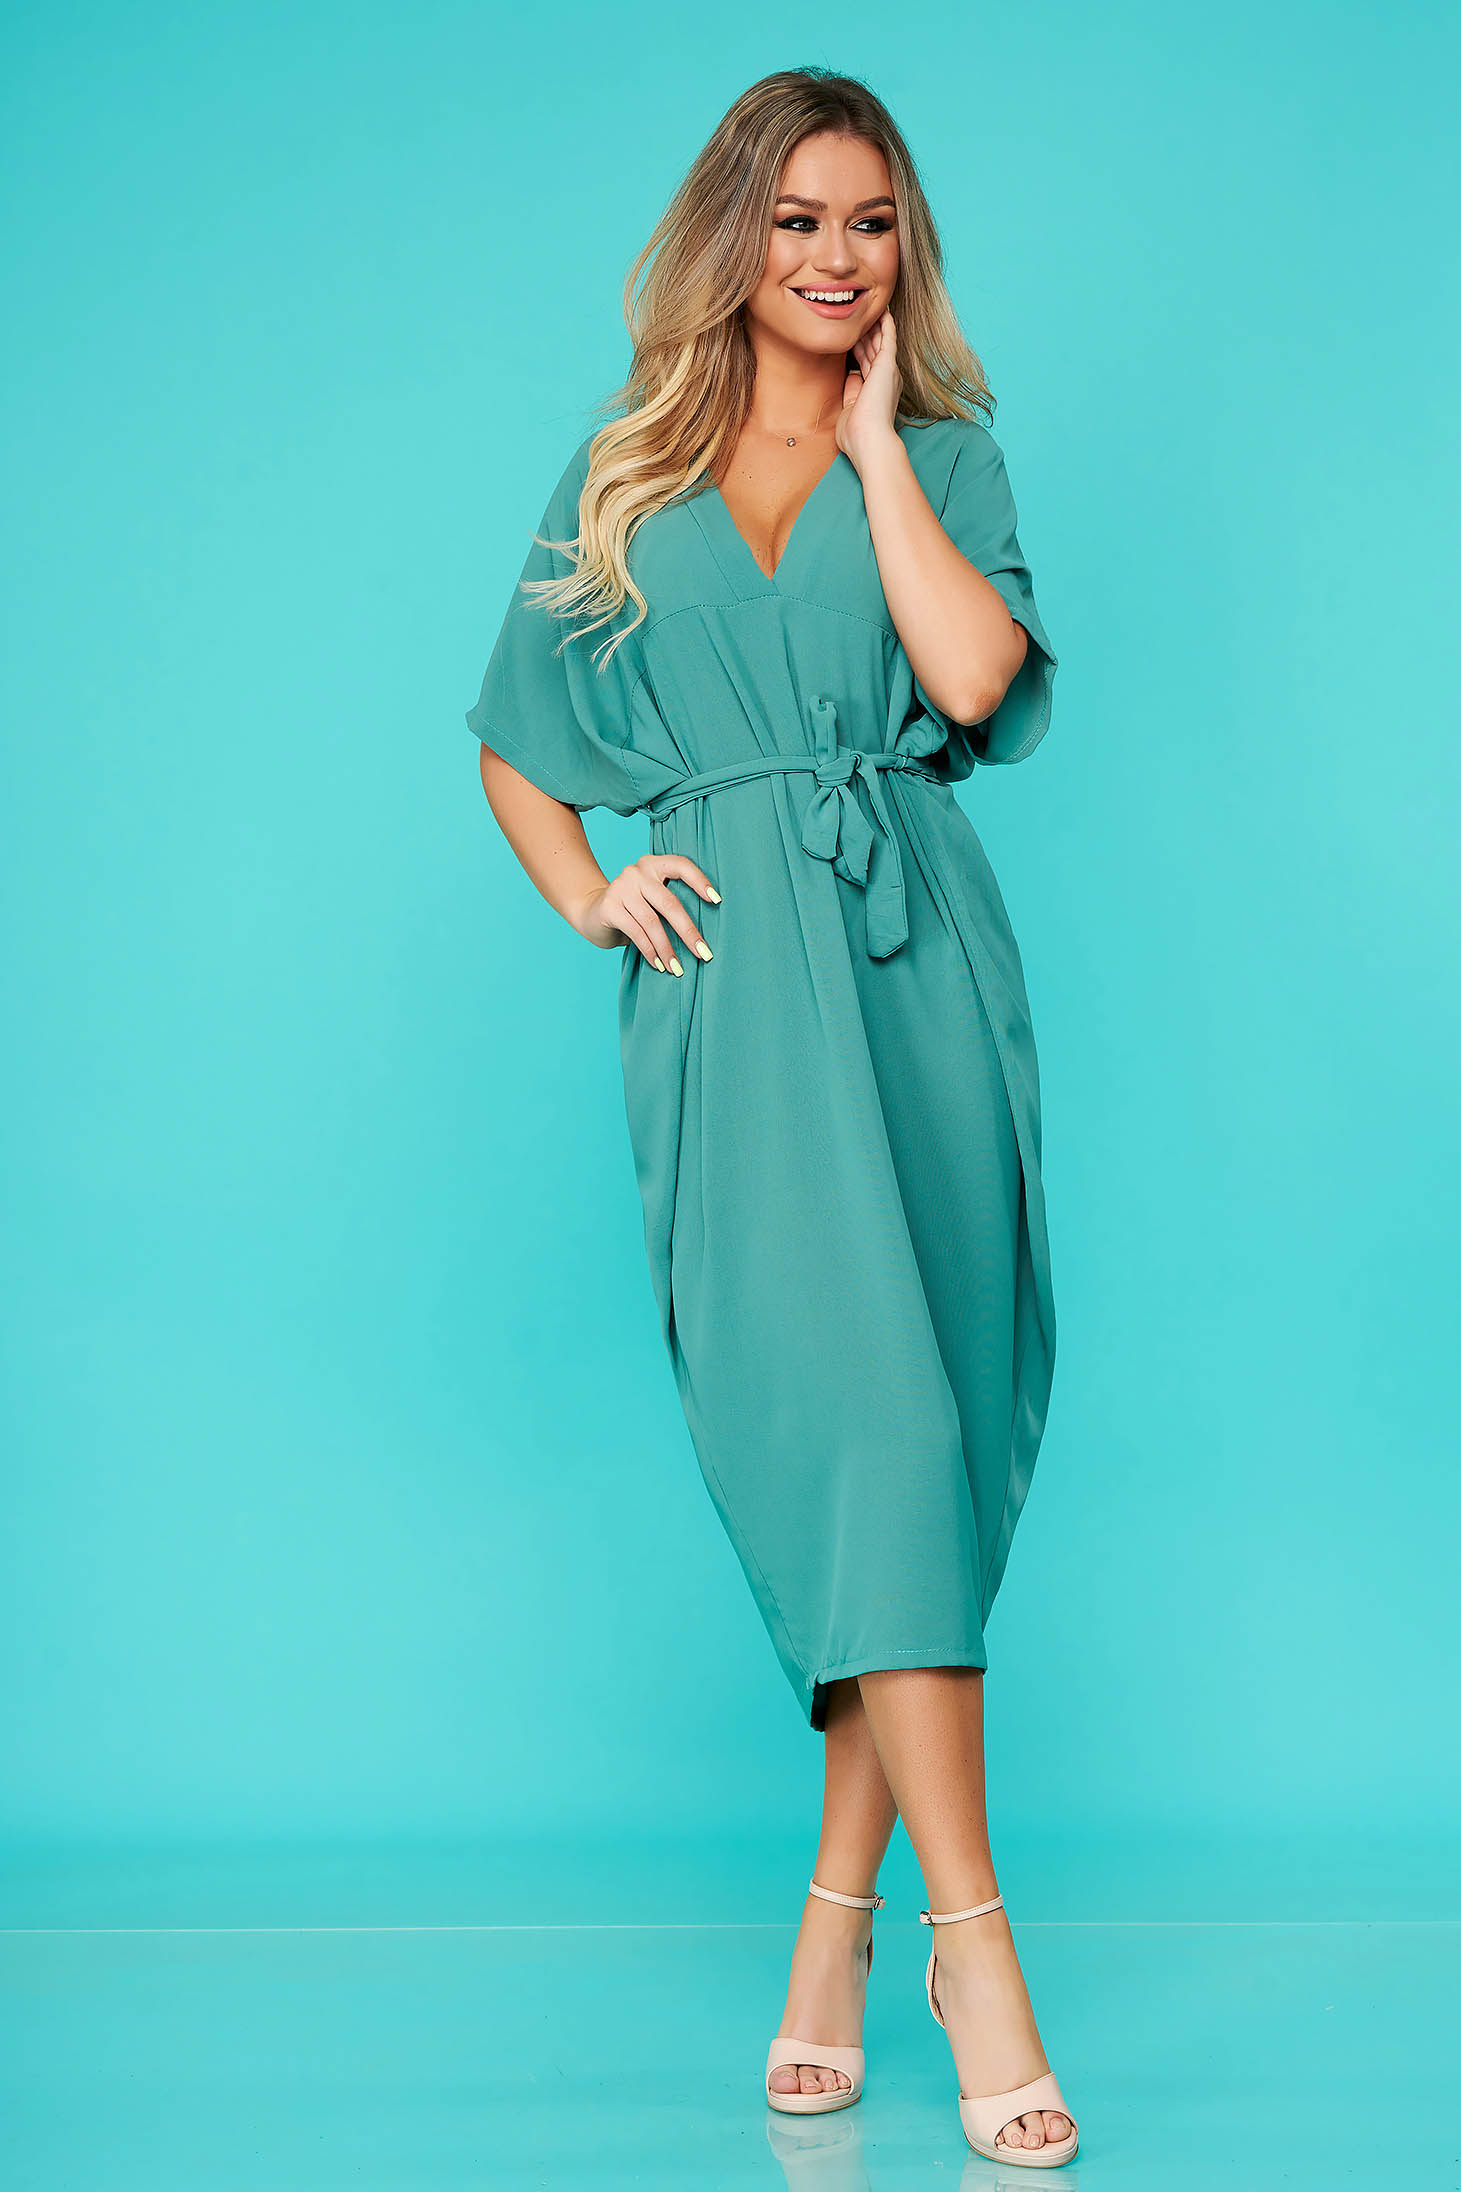 Lightgreen dress daily midi flared with v-neckline accessorized with tied waistband